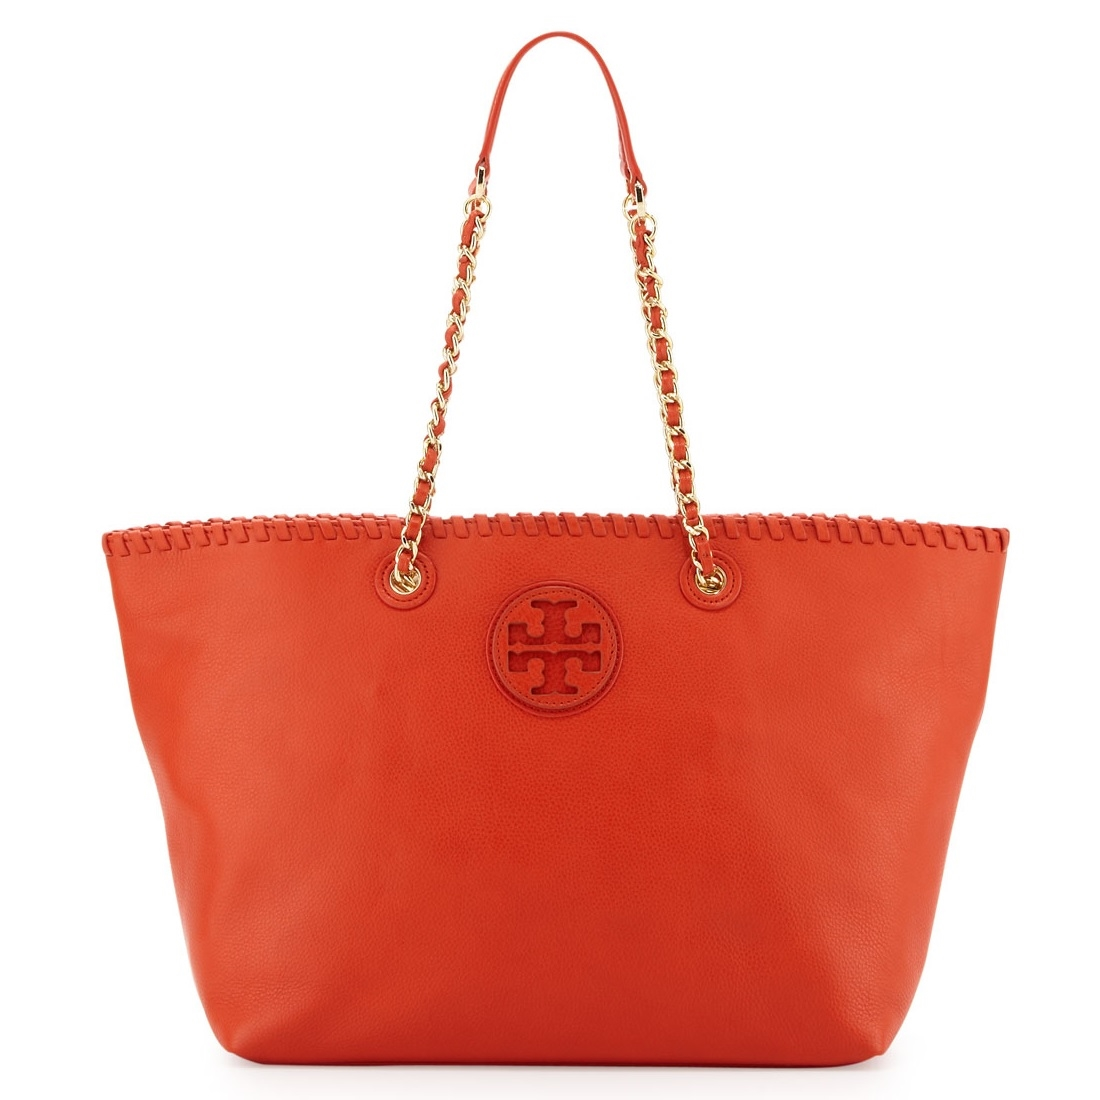 Snap N Zip Fashion Accessories Tory Burch Marion Small Tote